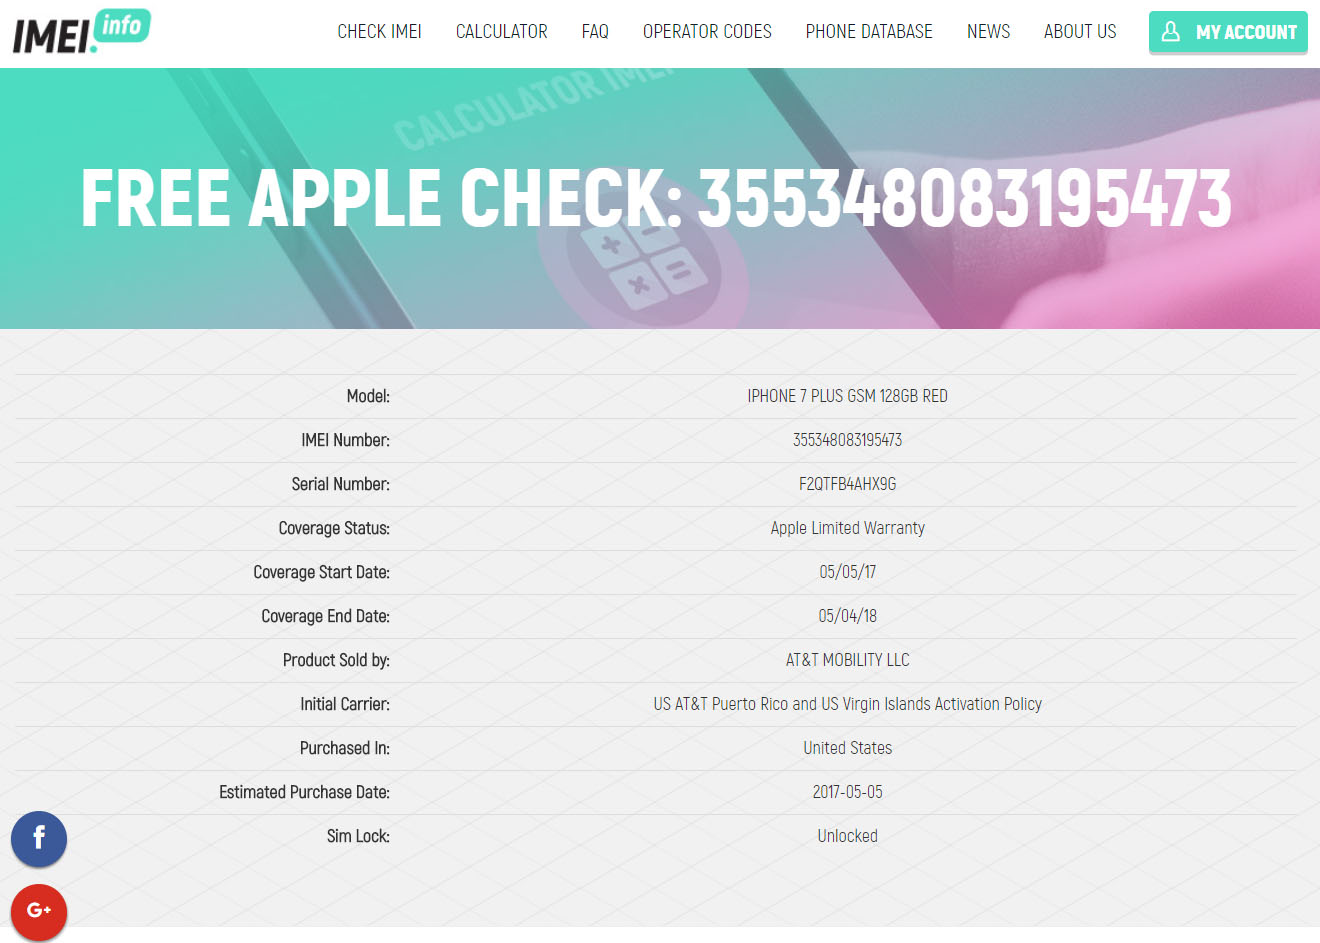 FREE iPhone CARRIER / WARRANTY Check - News - IMEI info